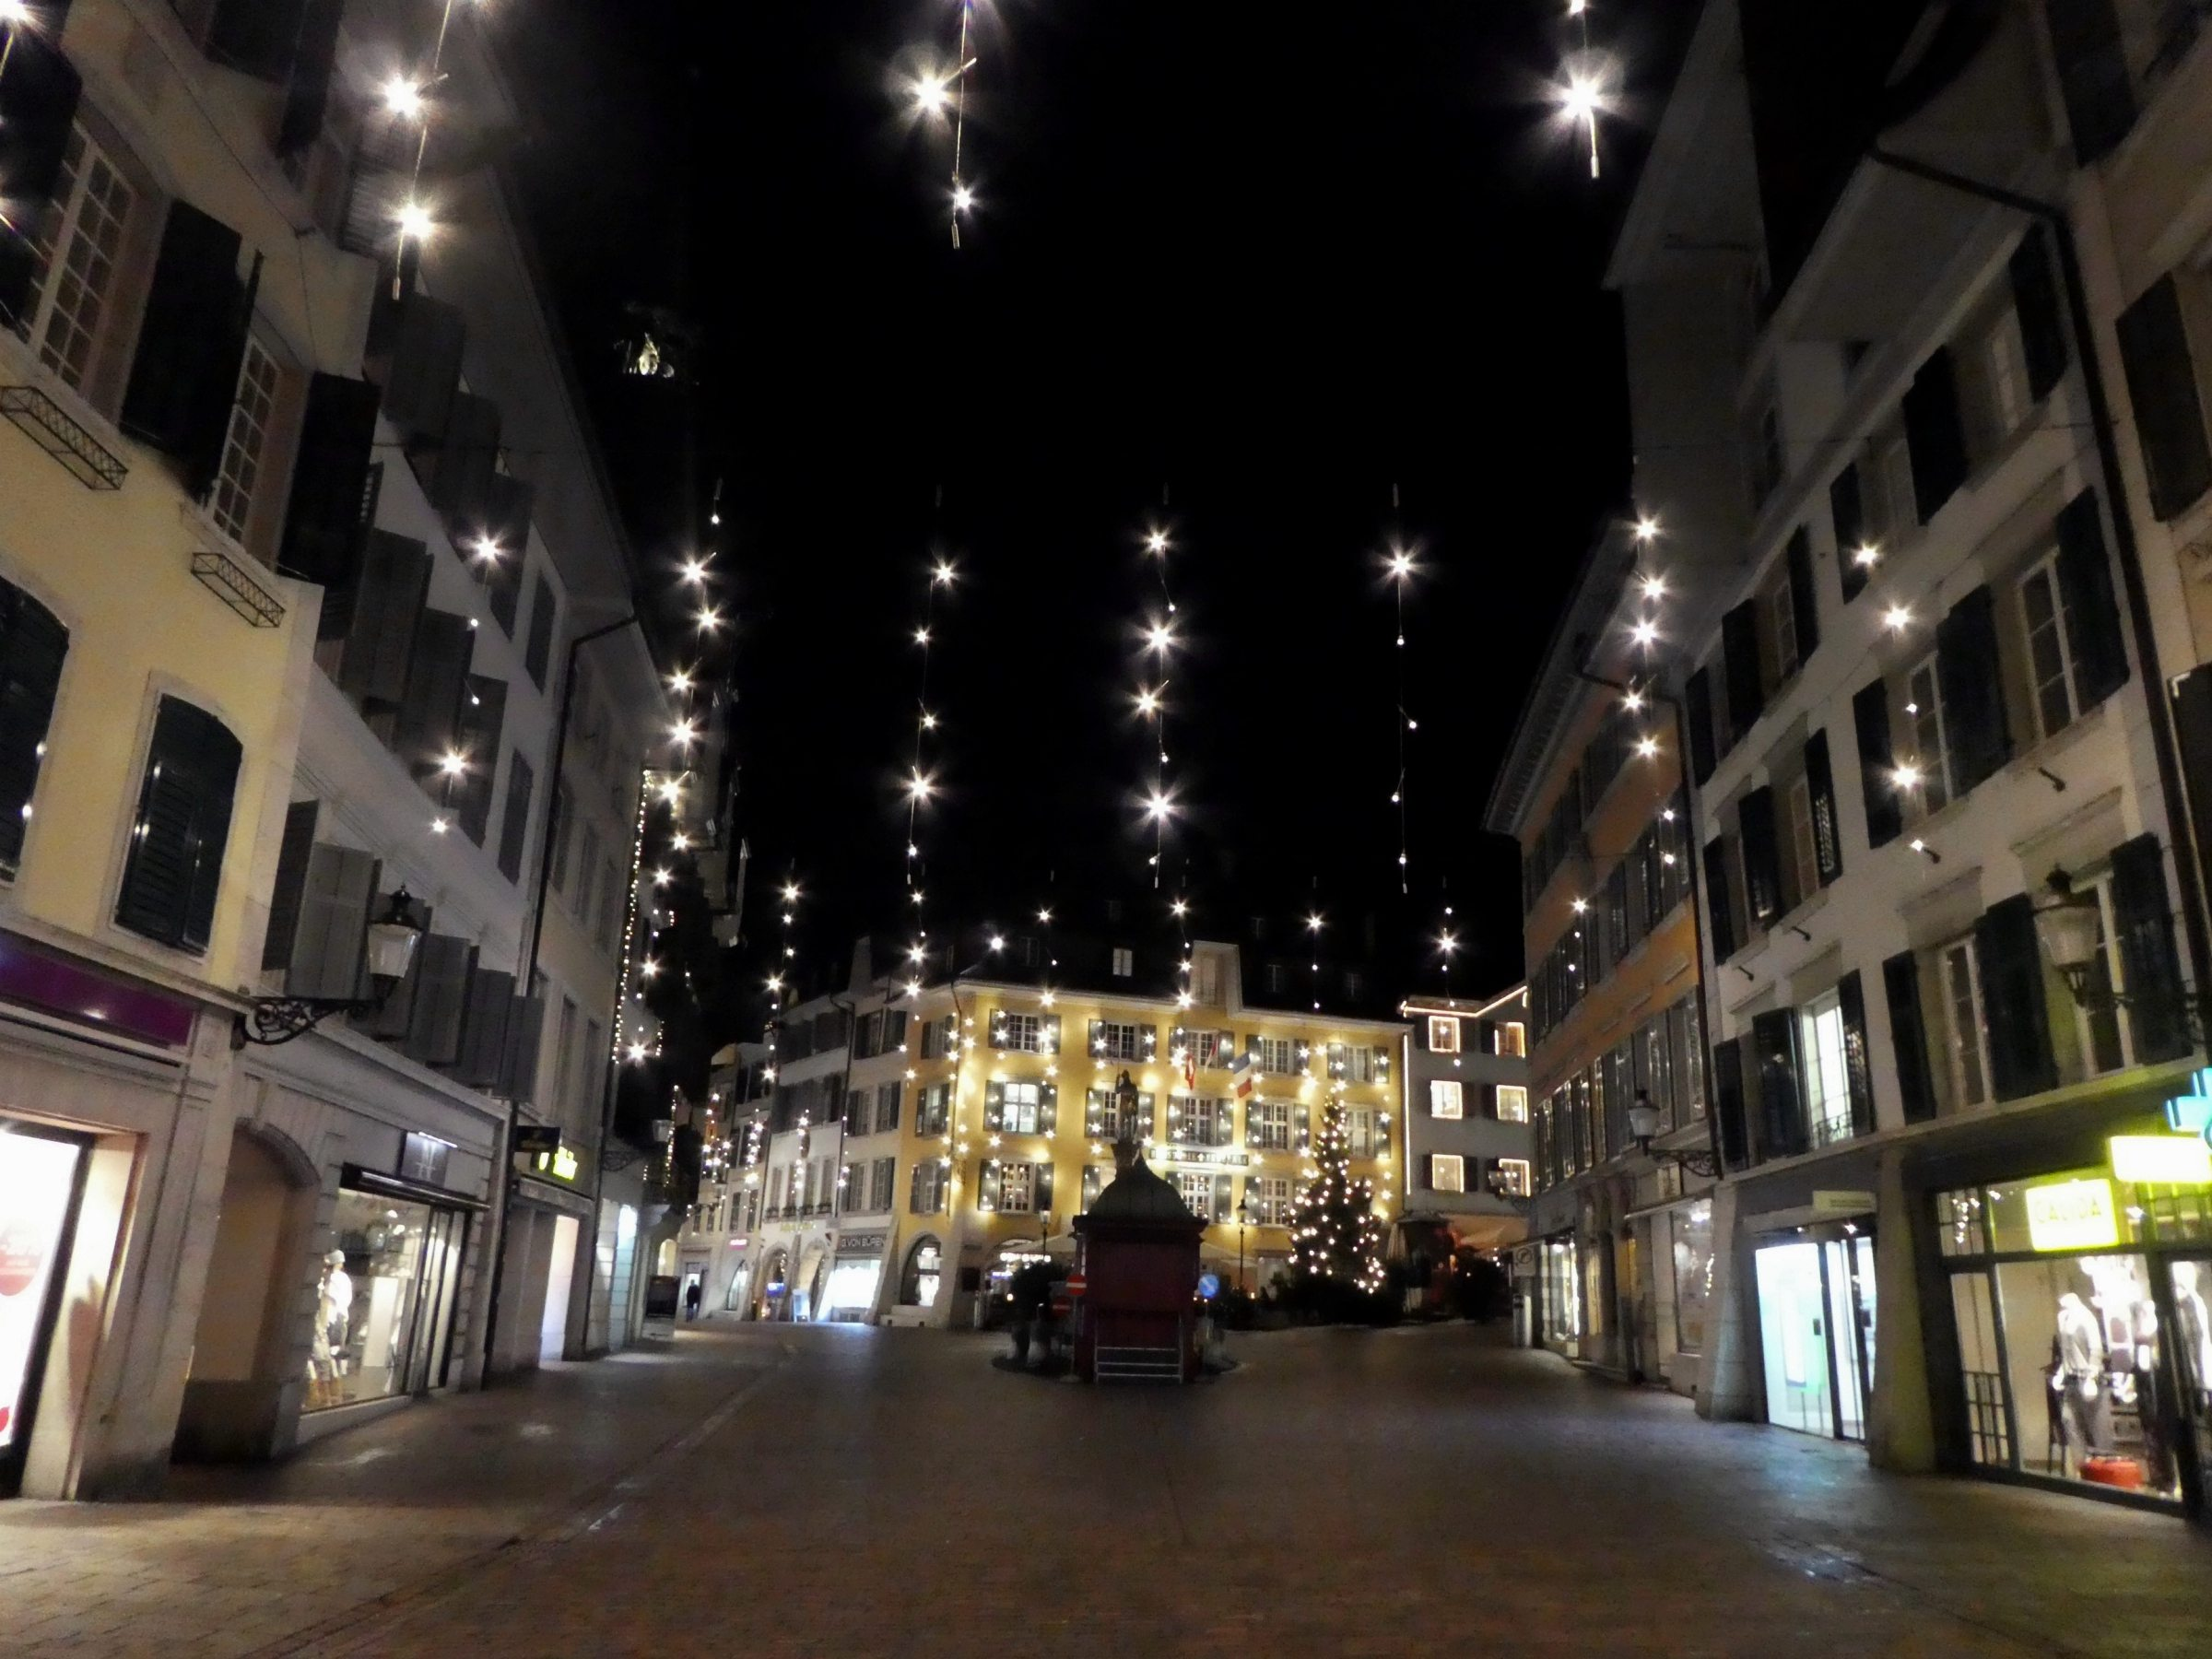 Christmas lights in Solothurn